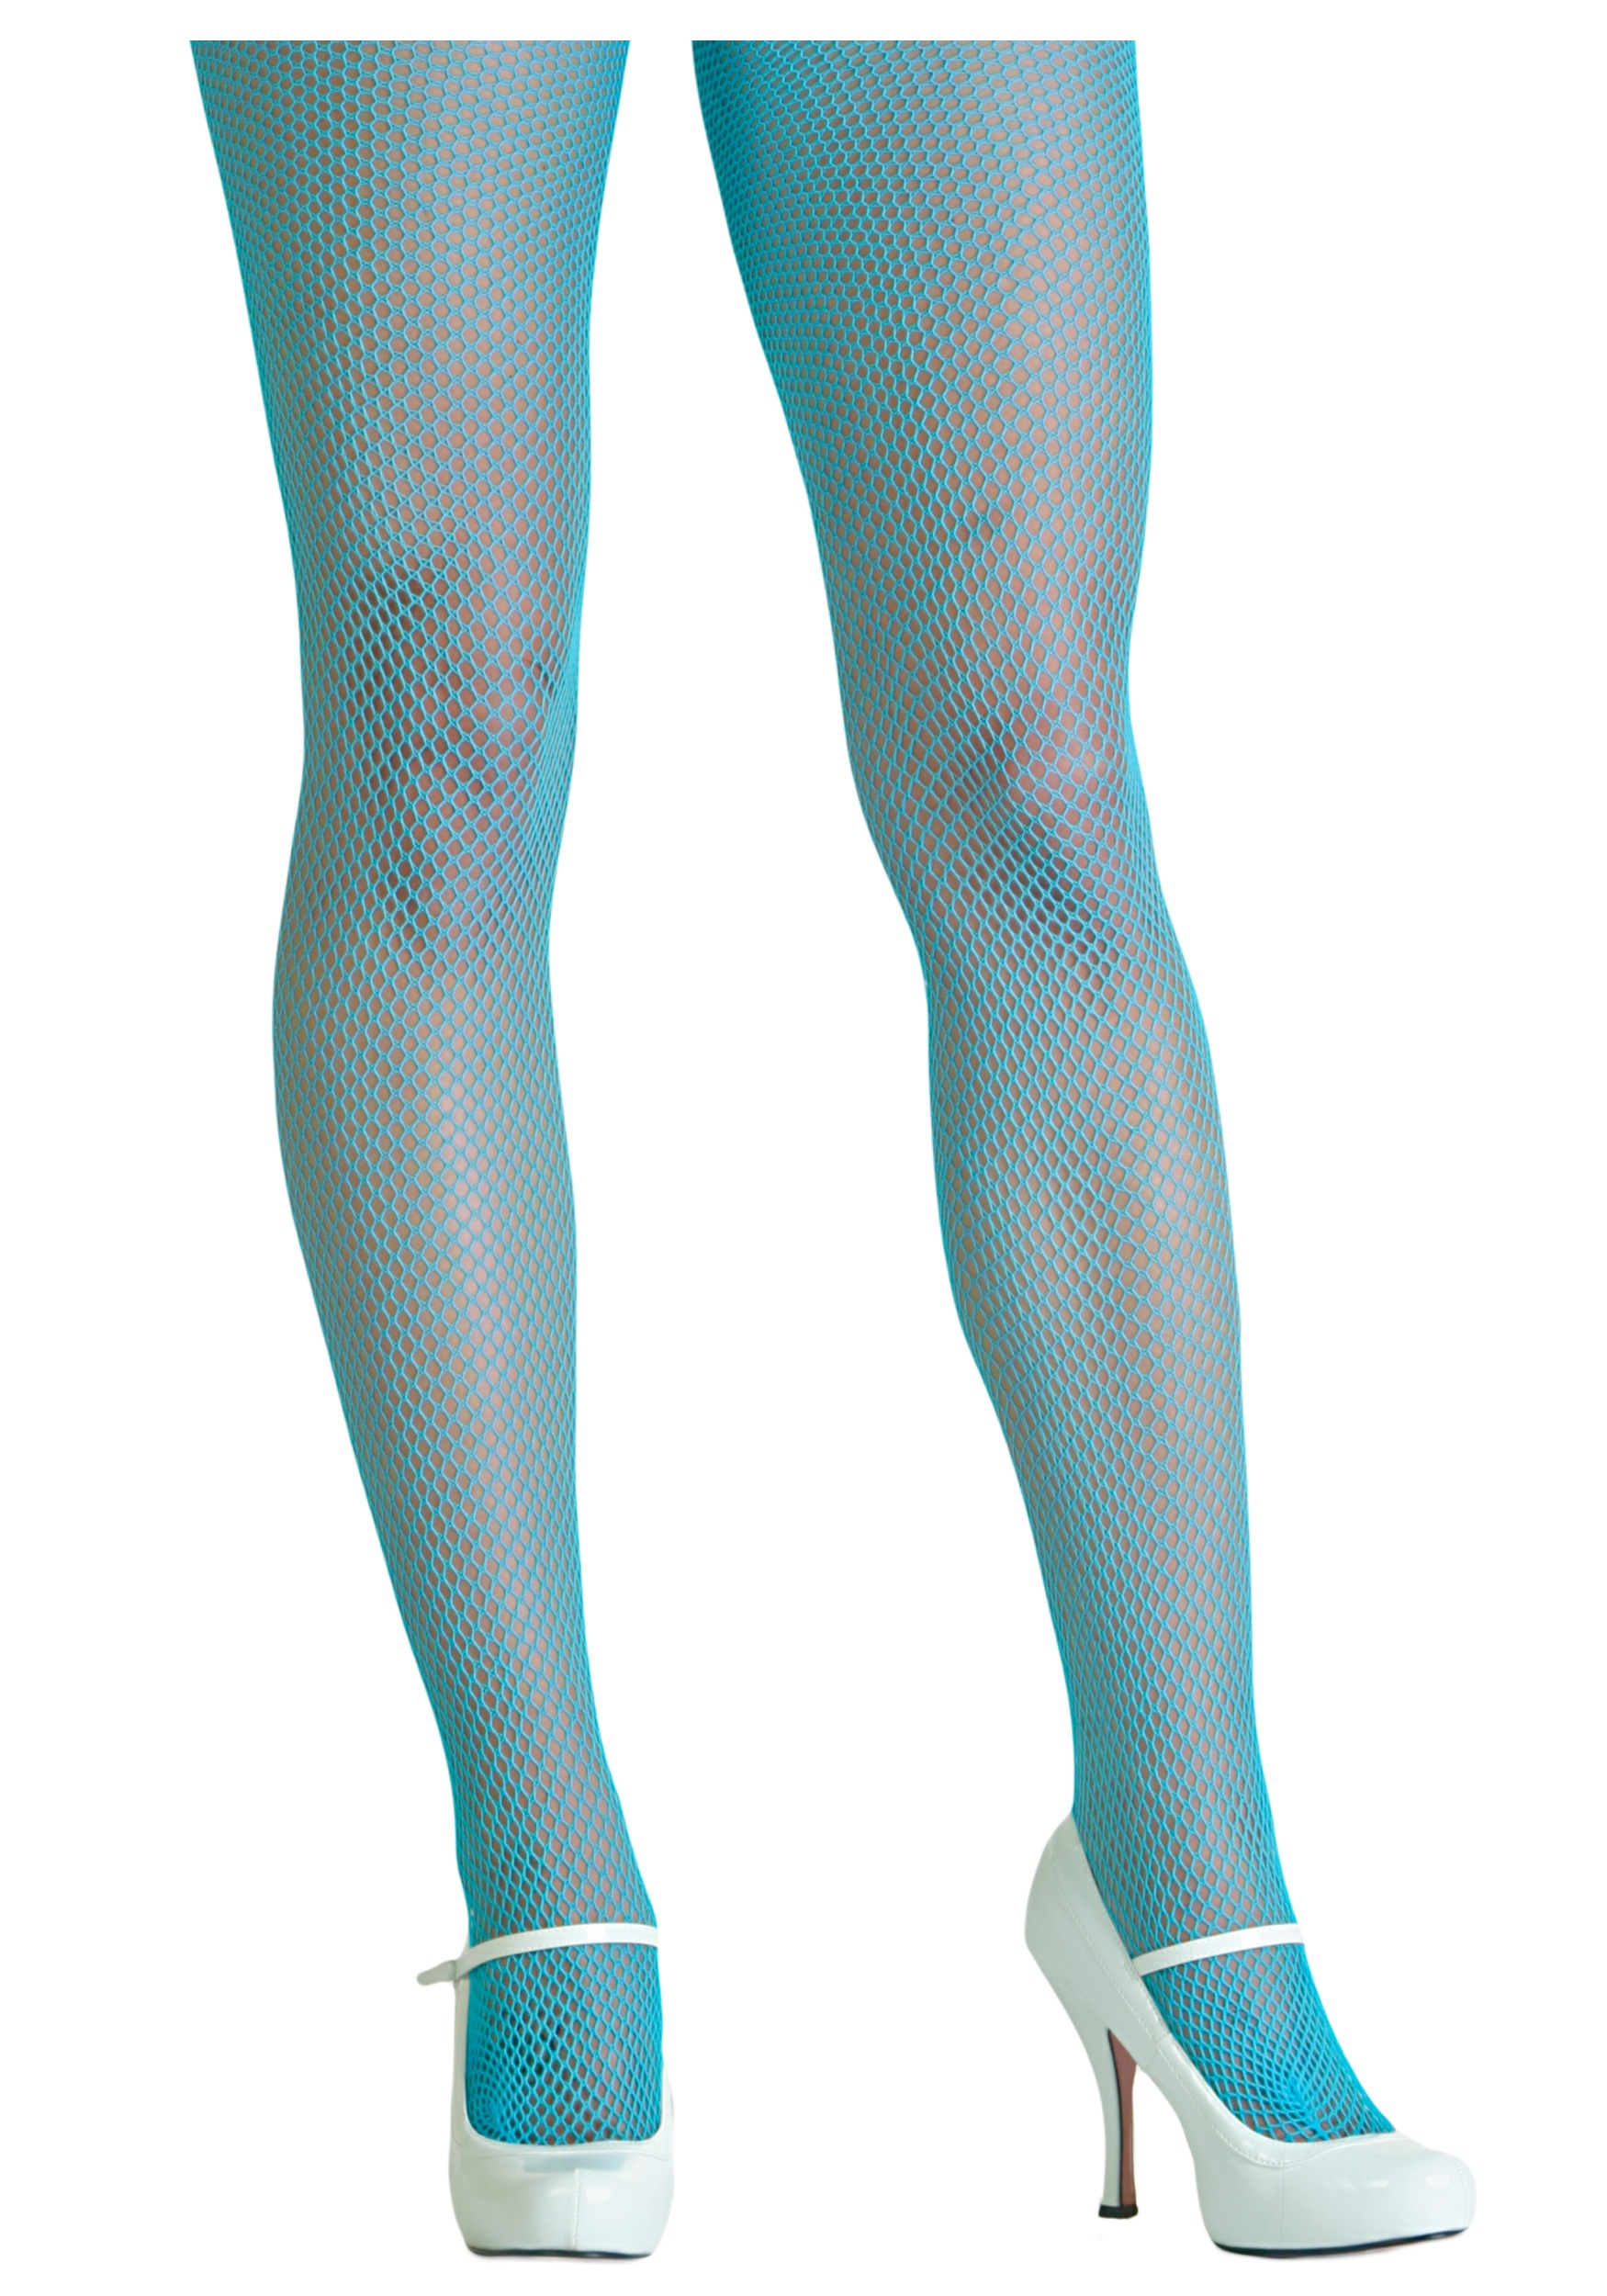 c483d846c8737 neon-blue-fishnet-tights.jpg